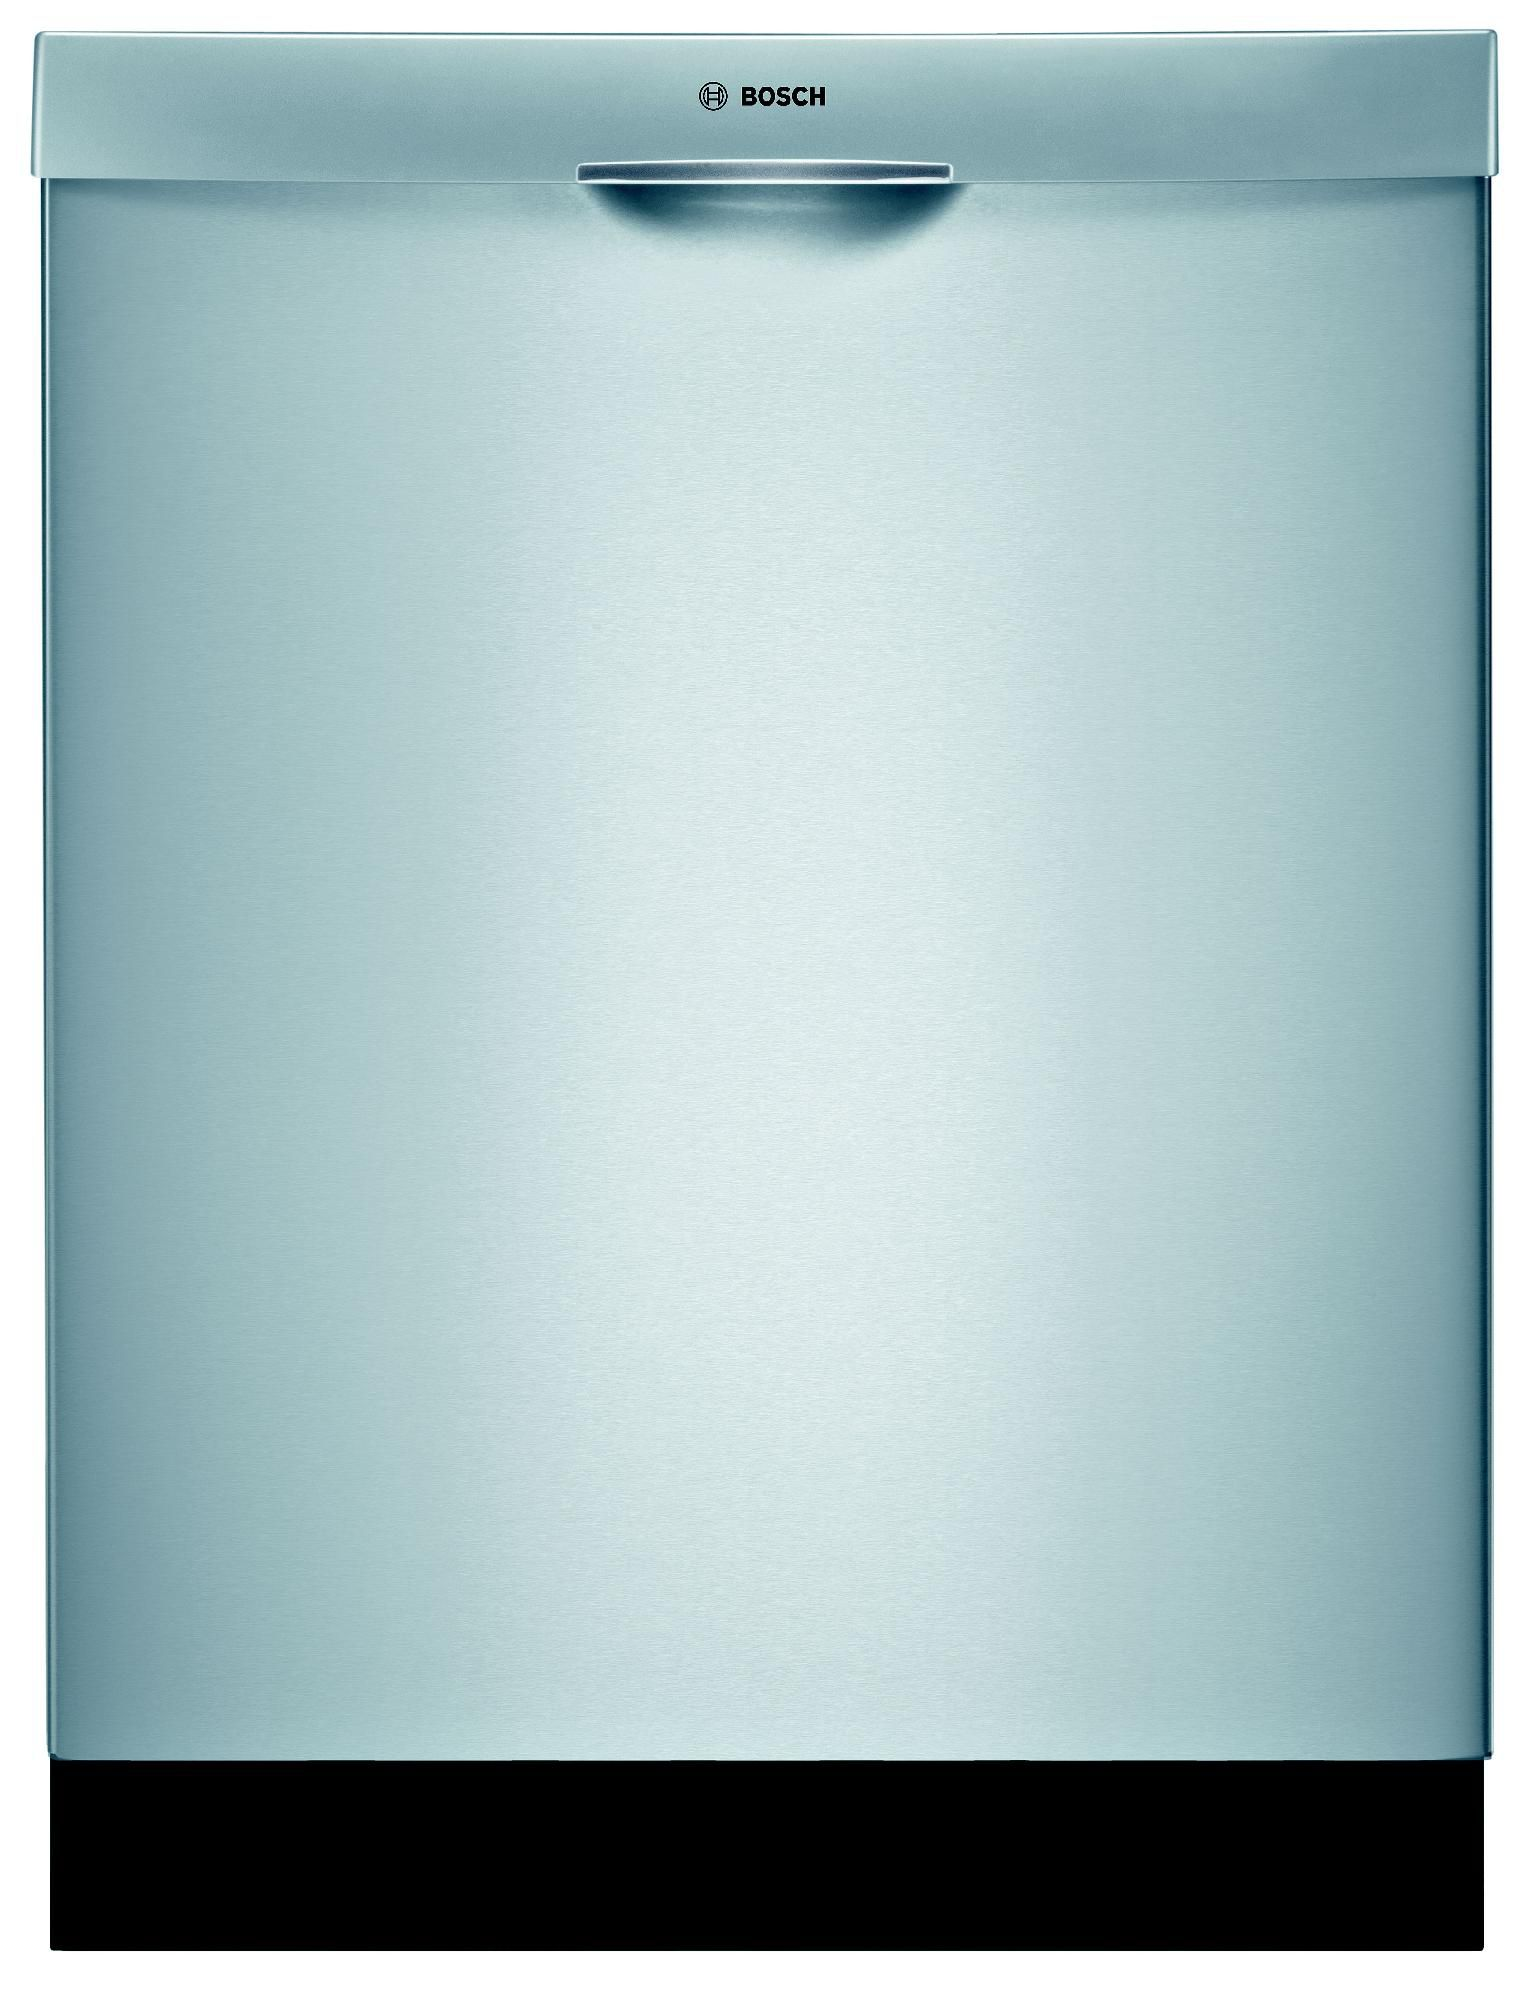 Bosch  24'' Built-In Dishwasher - Stainless Steel  ENERGY STAR®